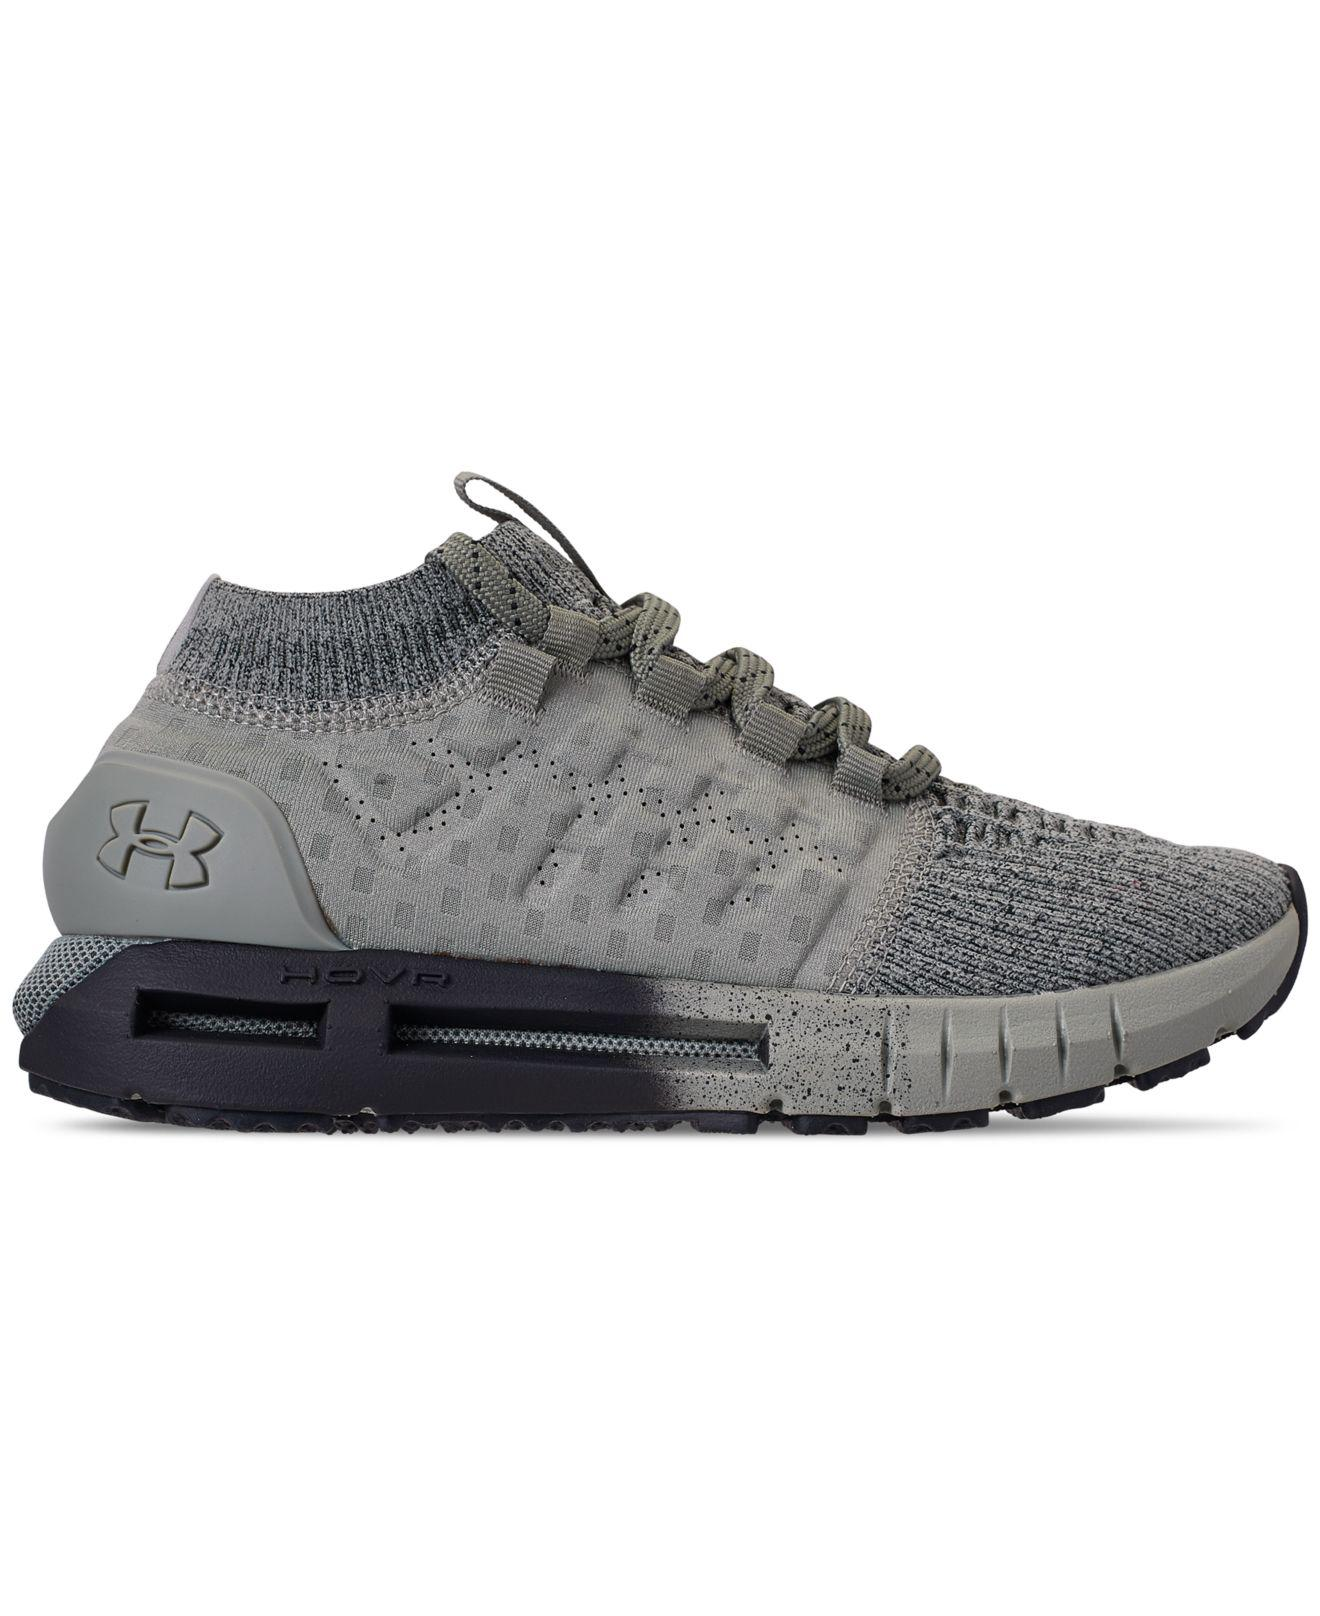 3f97ed2ba19d Lyst - Under Armour Hovr Phantom Nc Running Sneakers From Finish Line in  Black